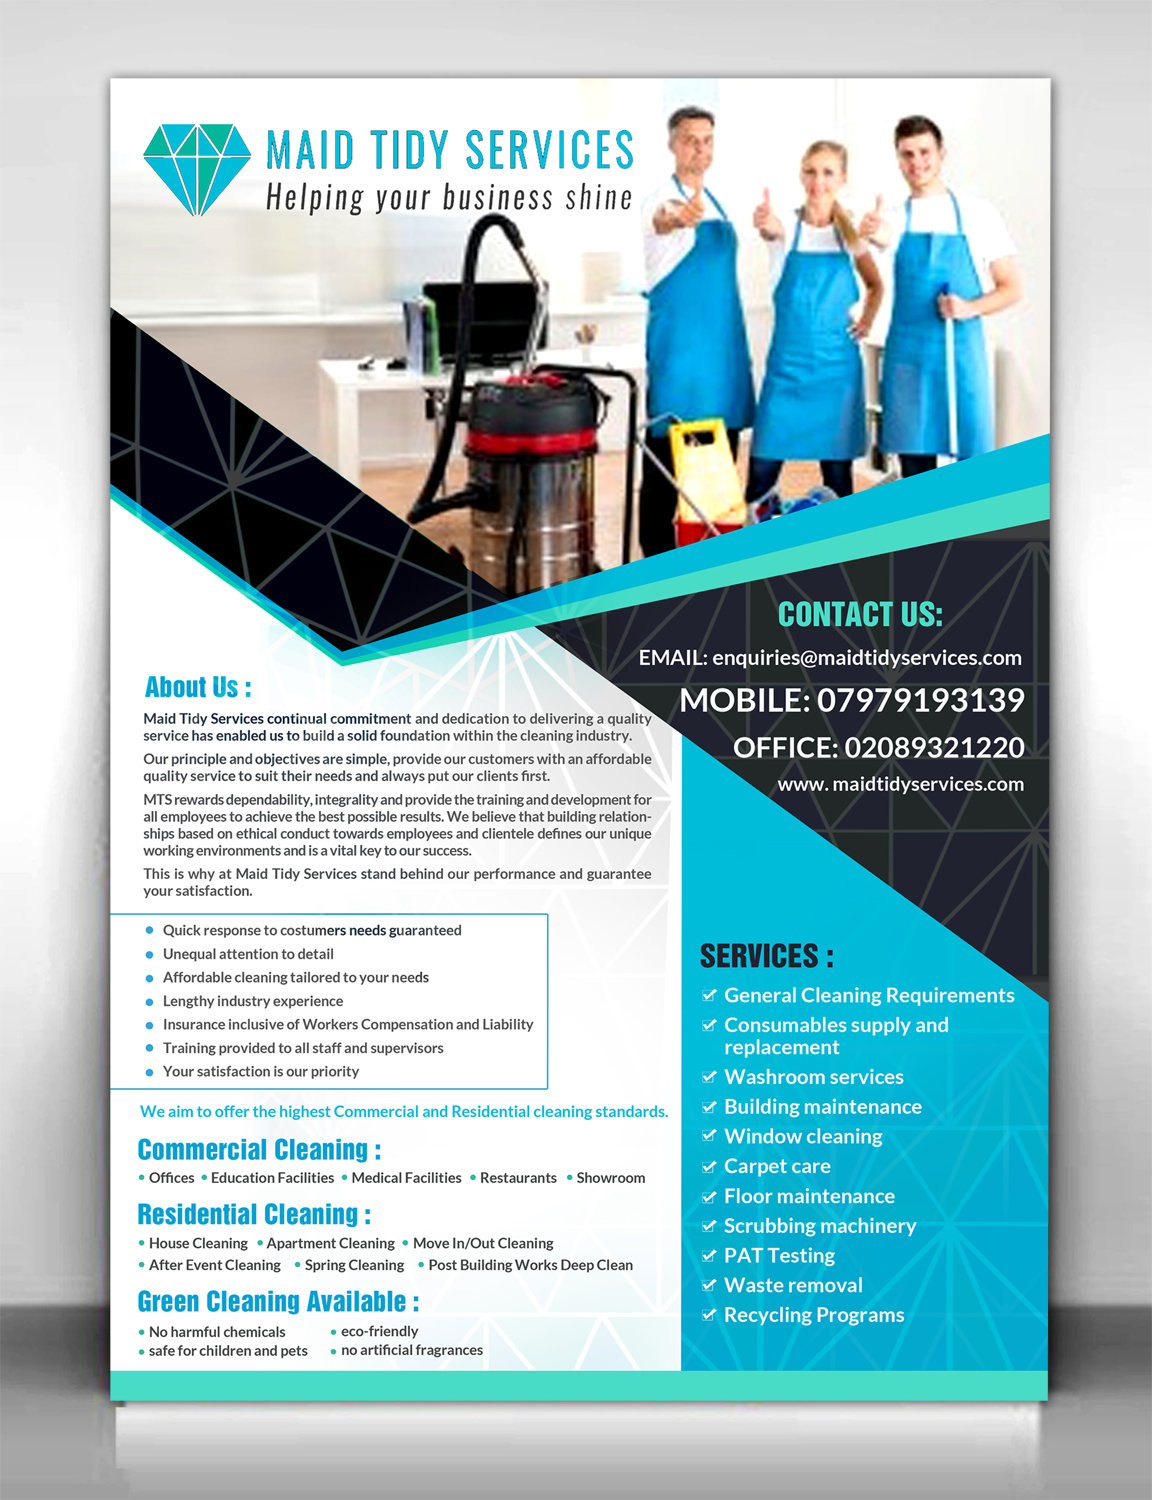 Serious Professional Cleaning Service Flyer Design For A